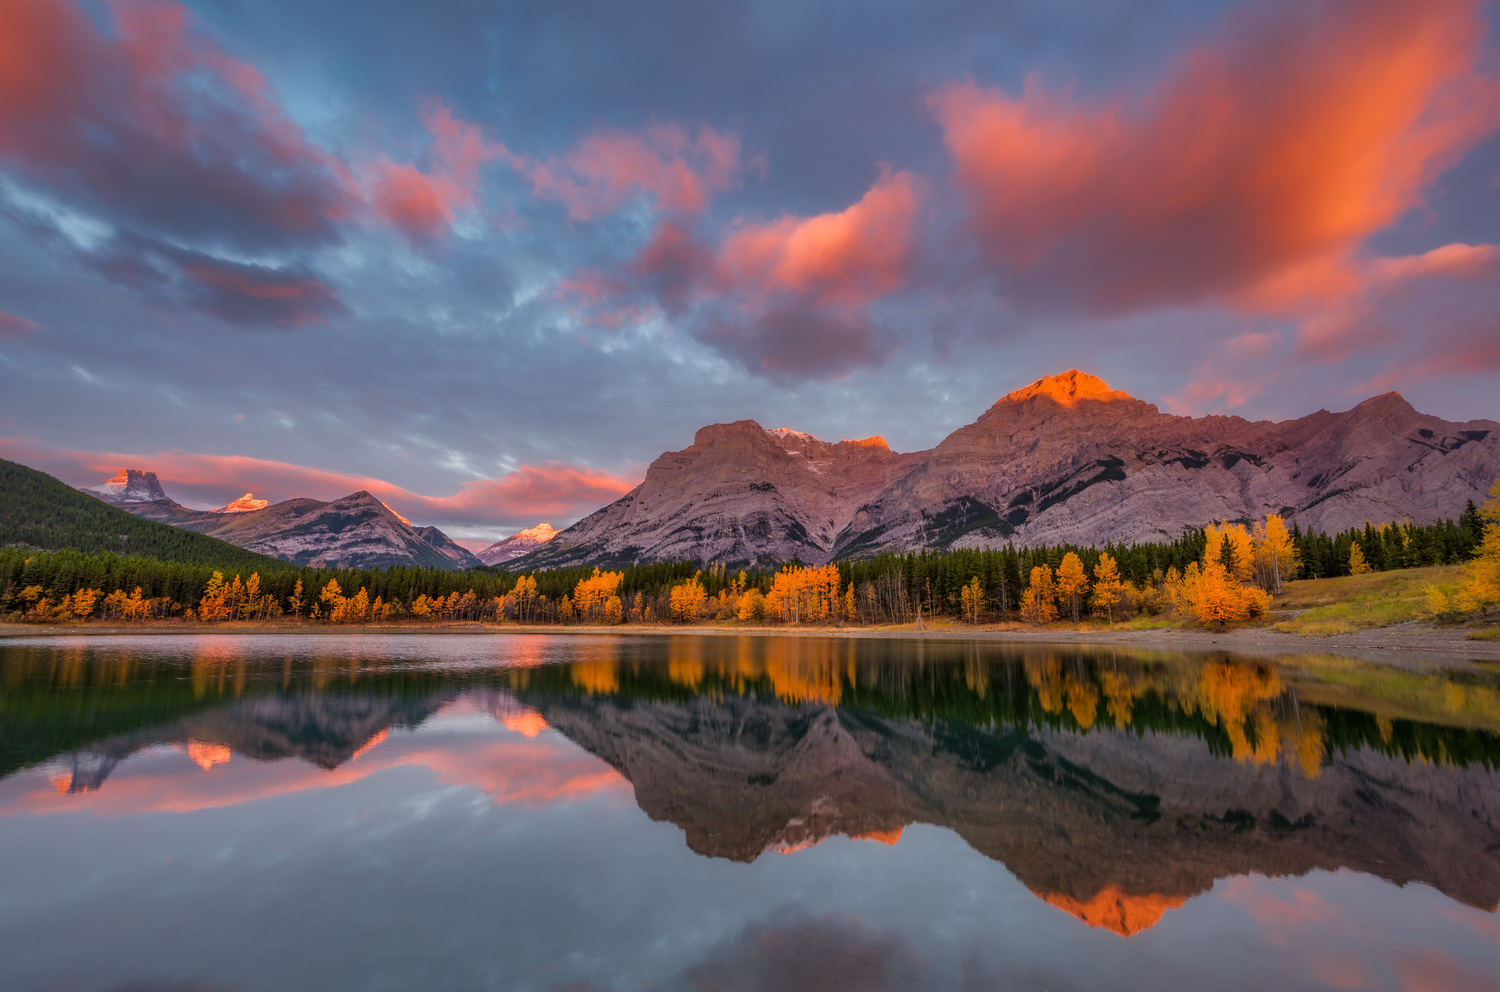 Wedge pond by Alex Hill